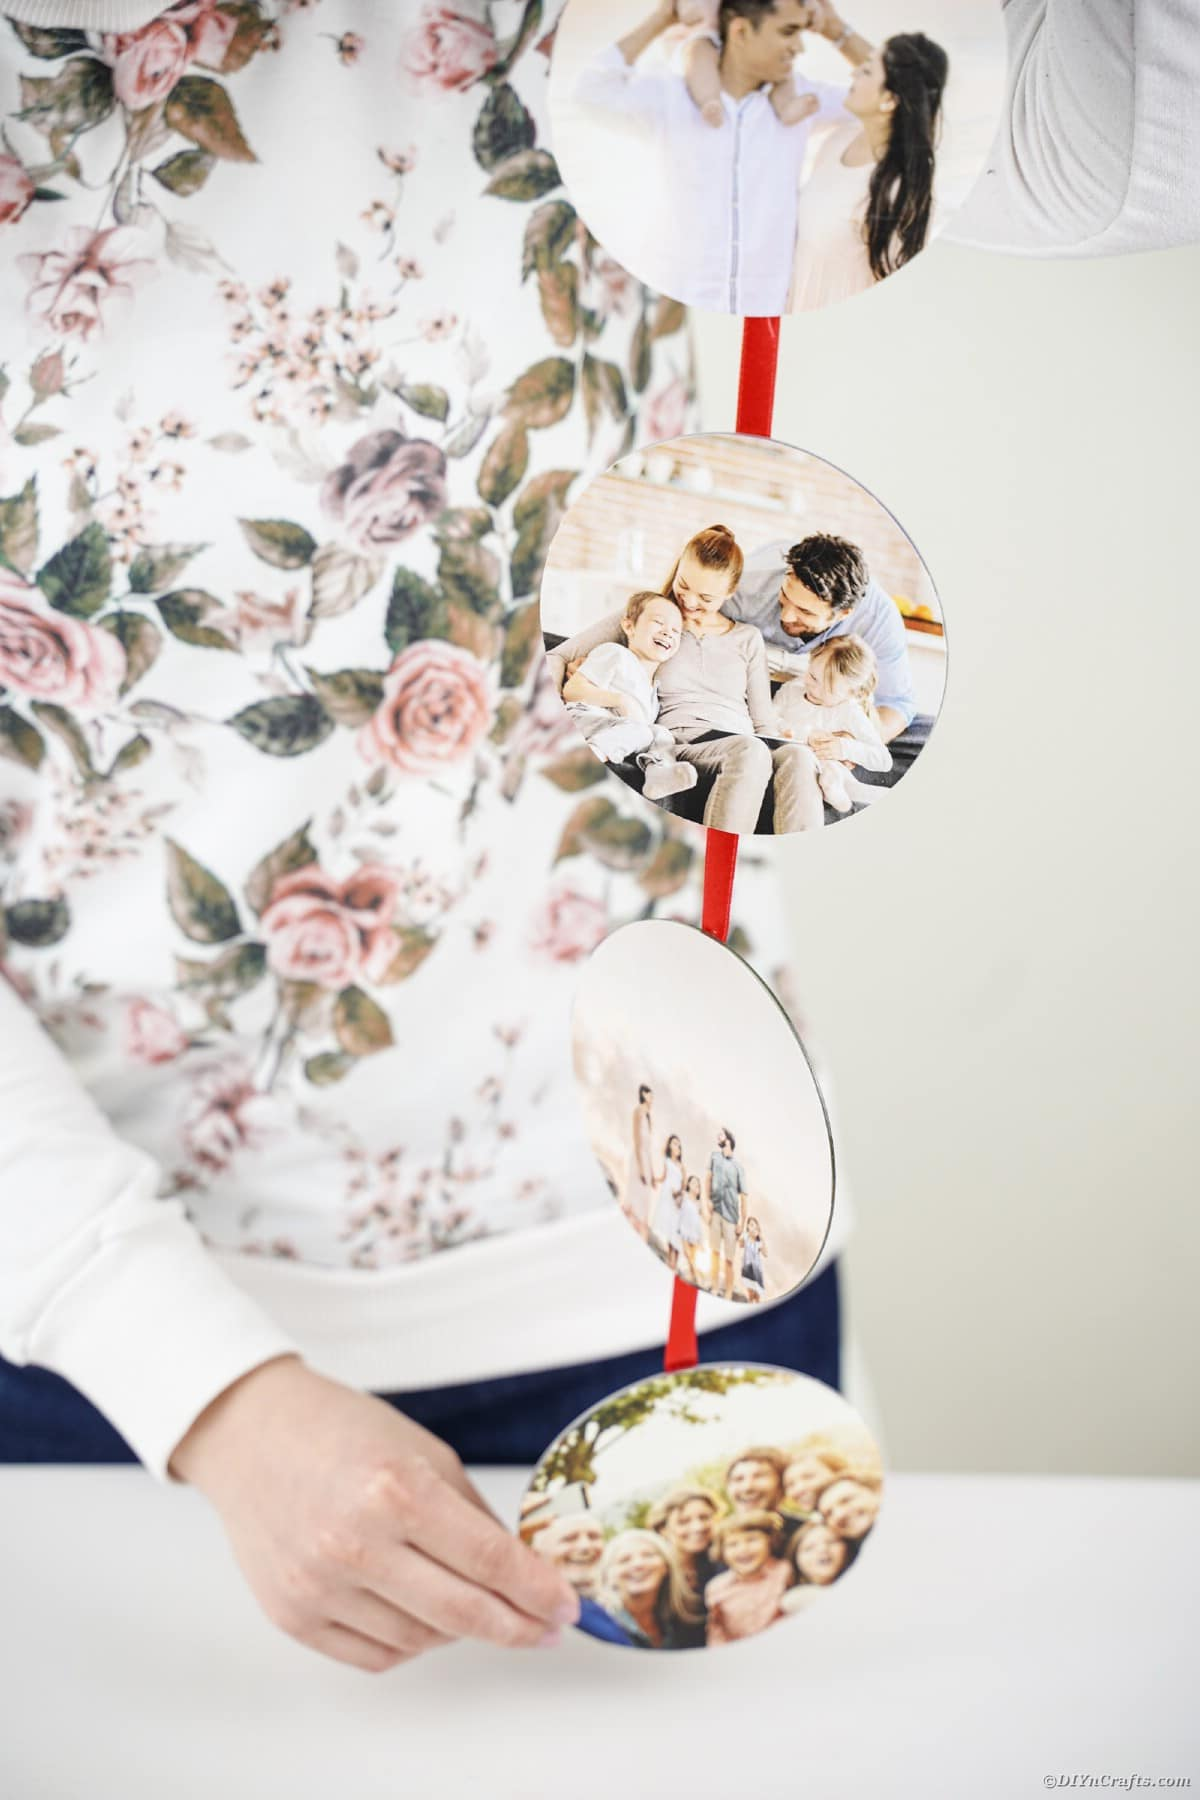 Woman in floral shirt holding craft picture ribbon above white table